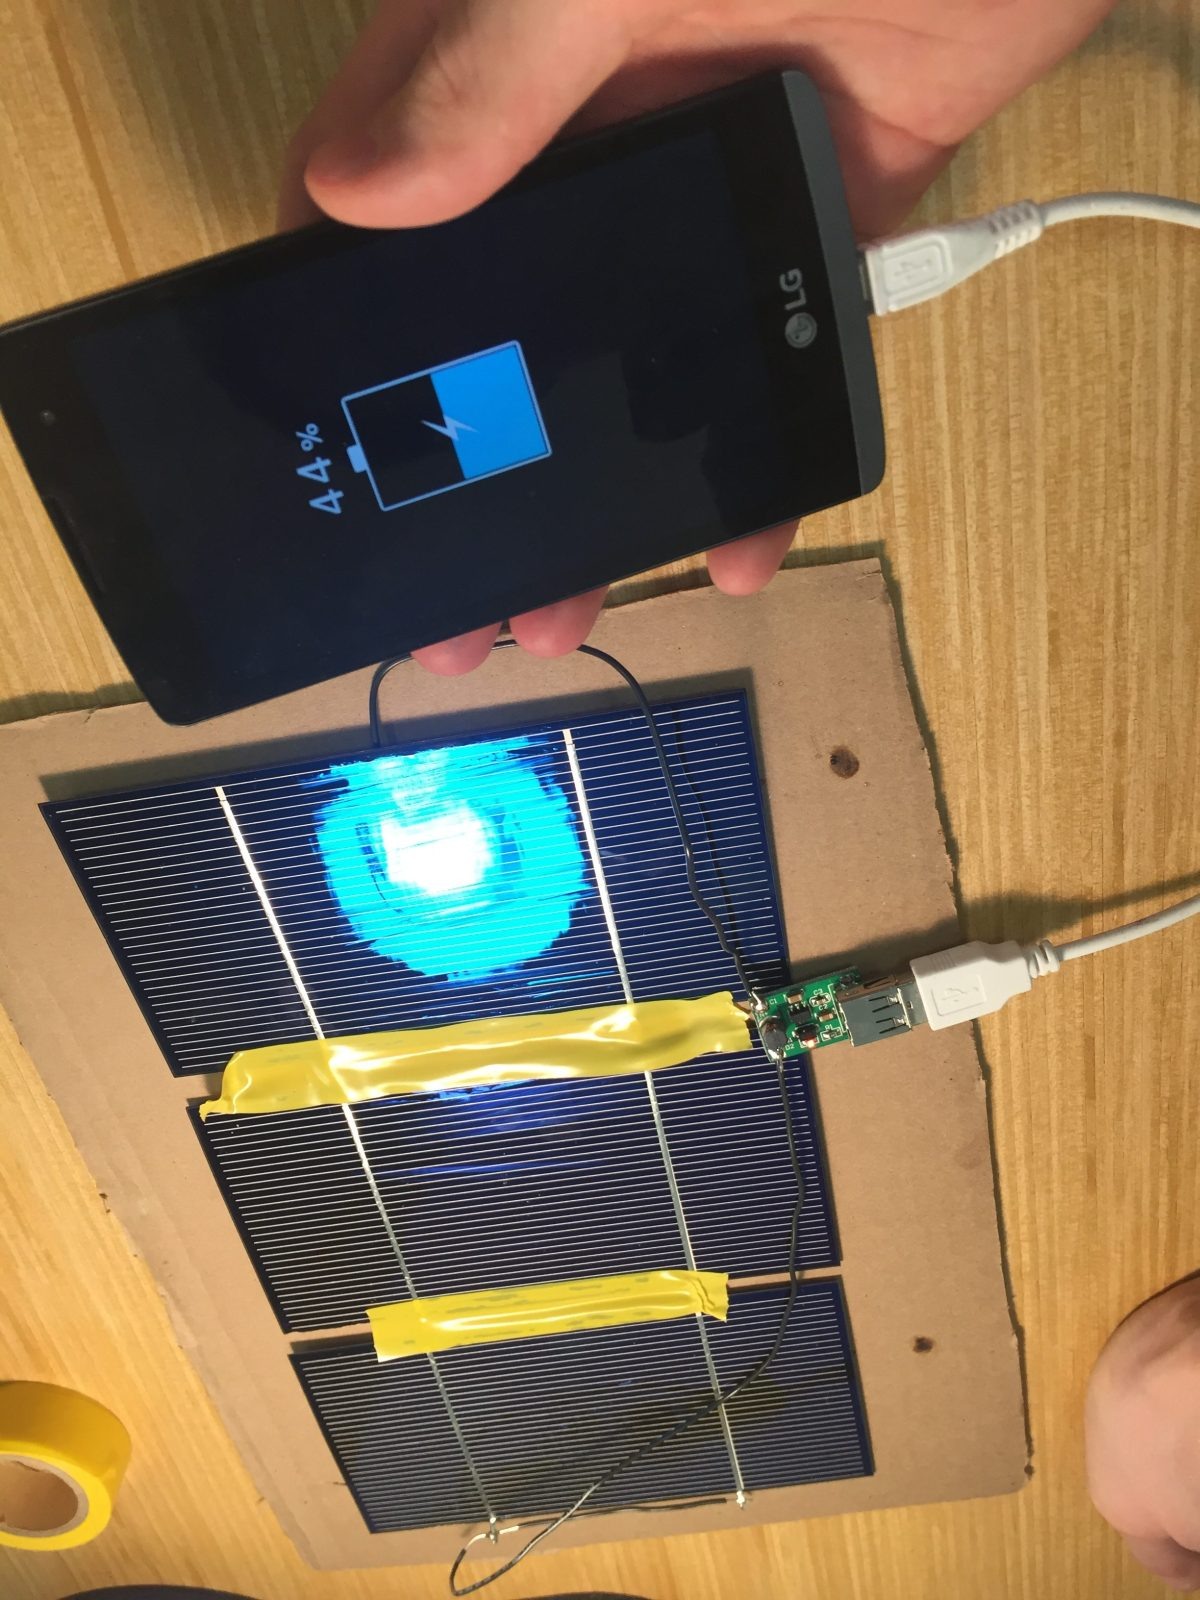 Solar cells charging an Android phone